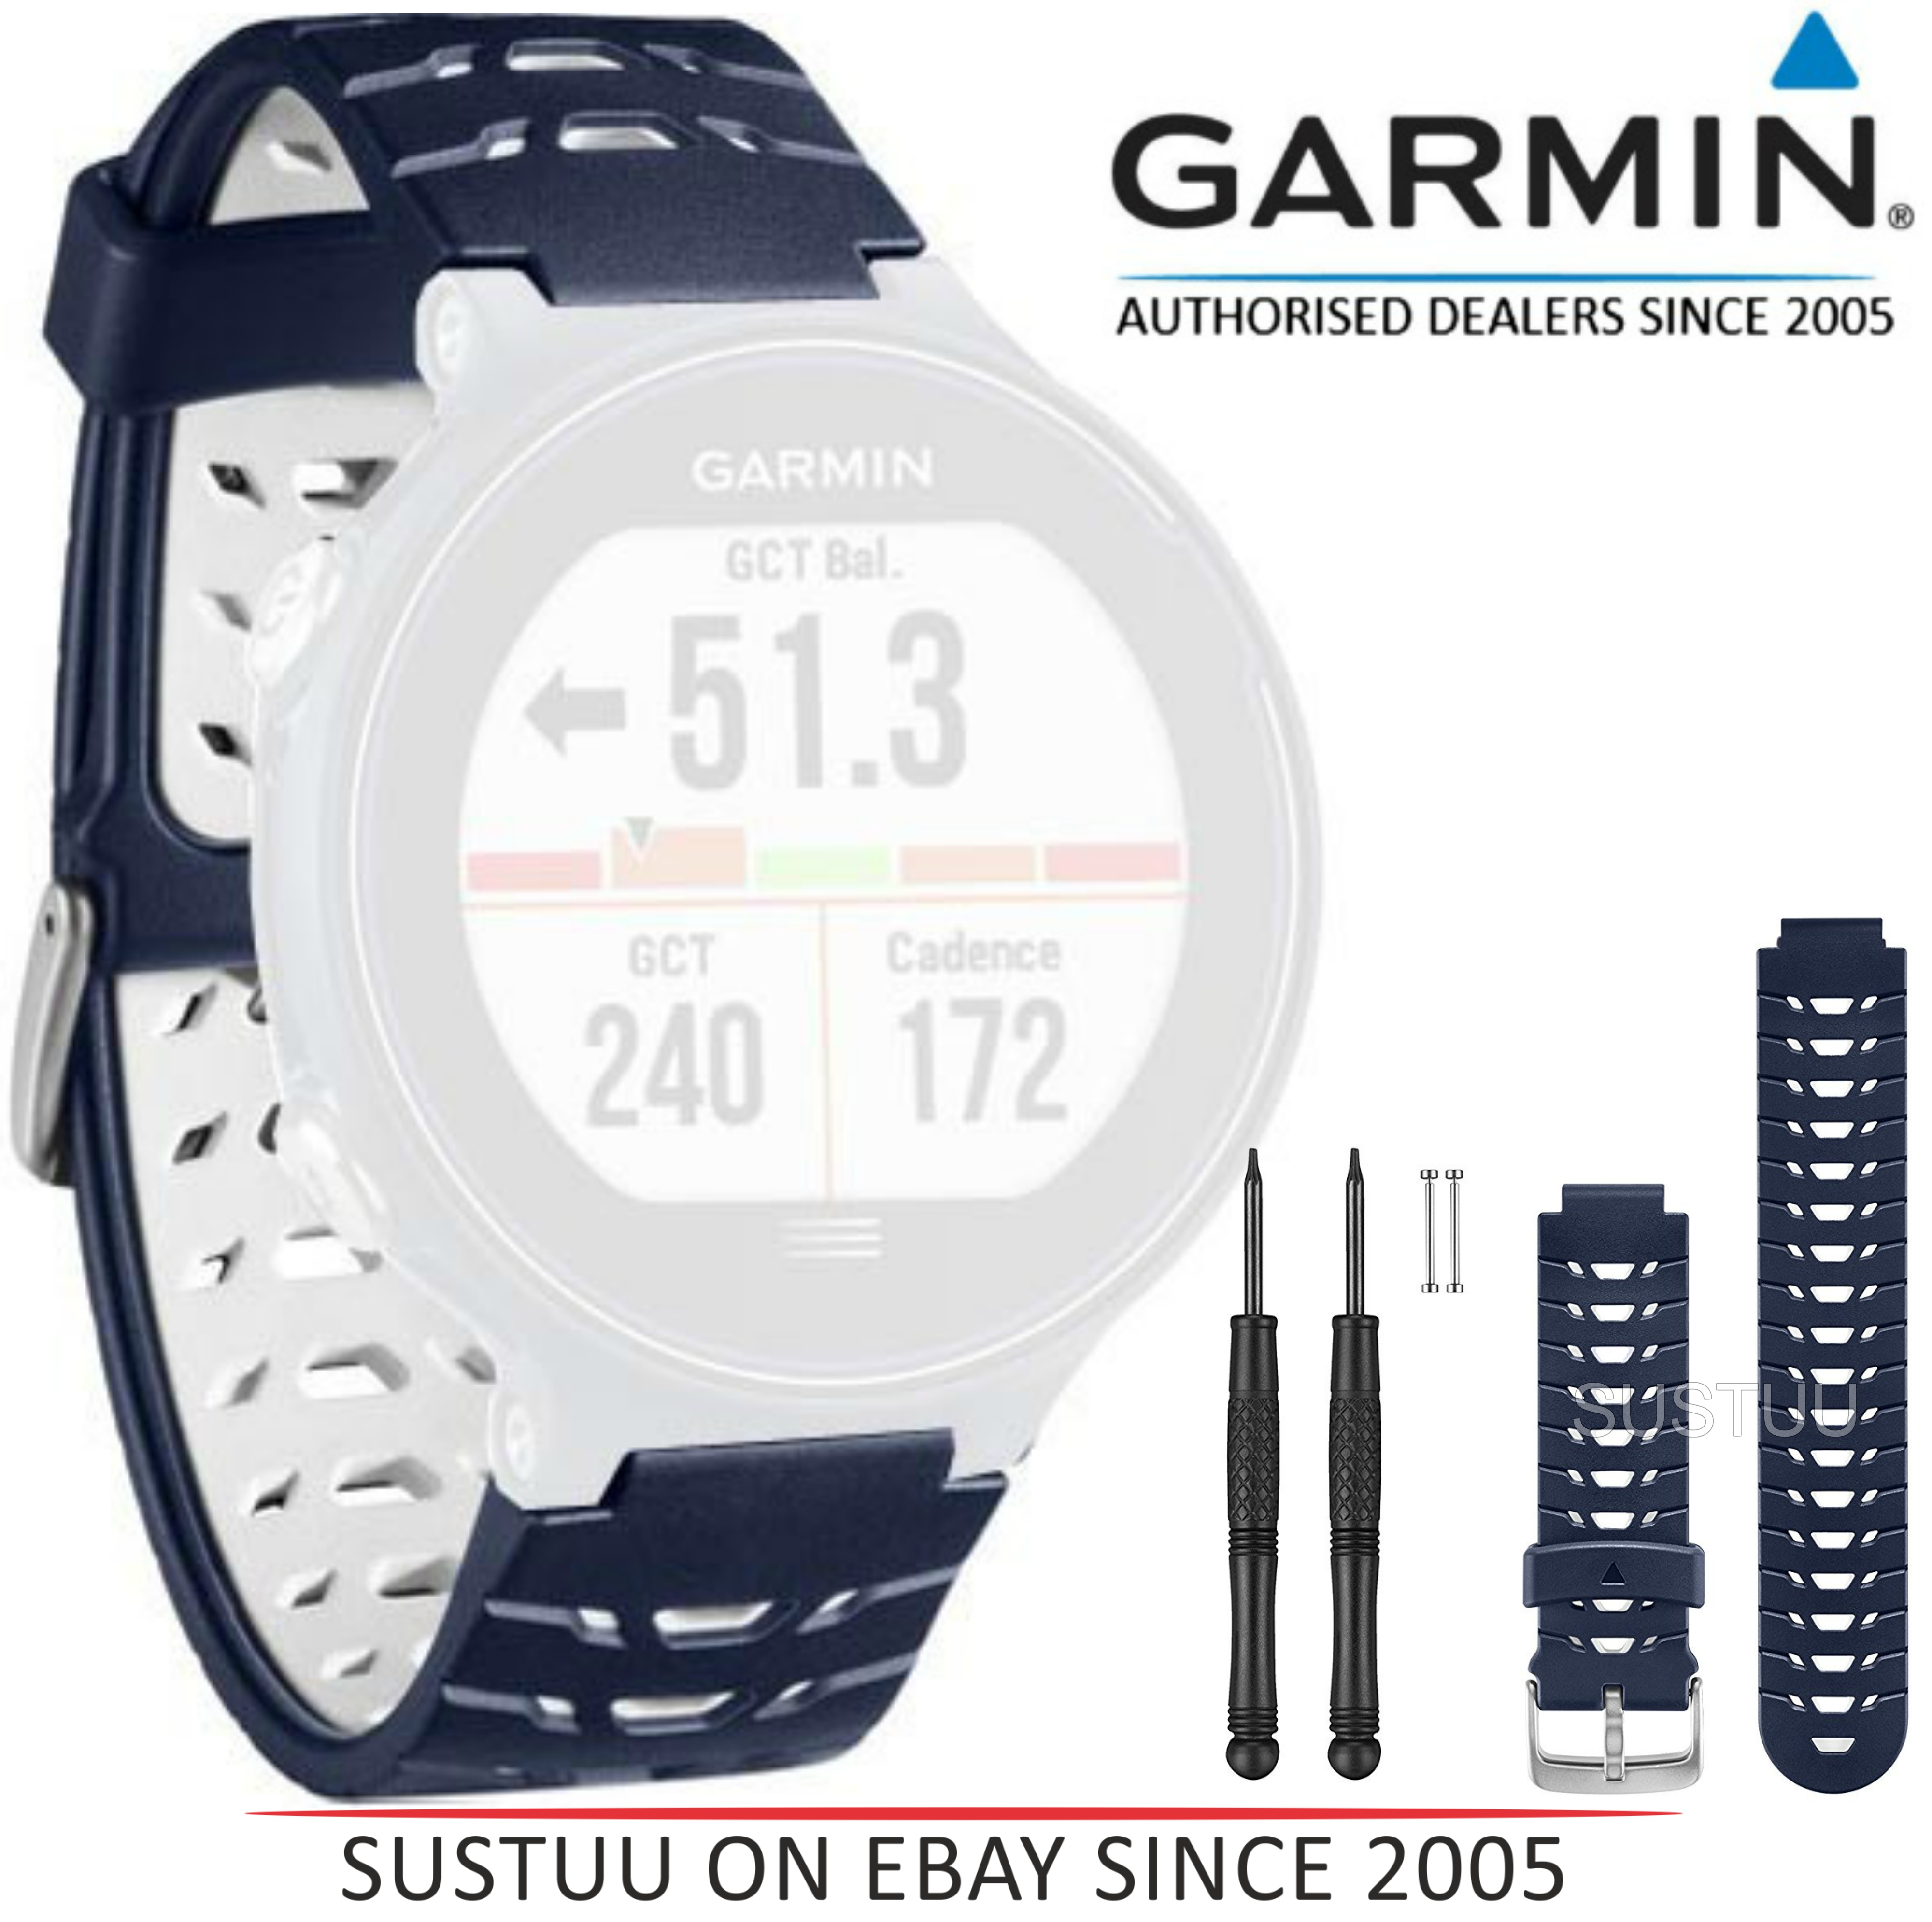 Garmin Replacement Wrist Band Strap|Fits GPS Forerunner230/235/630|Midnight Blue